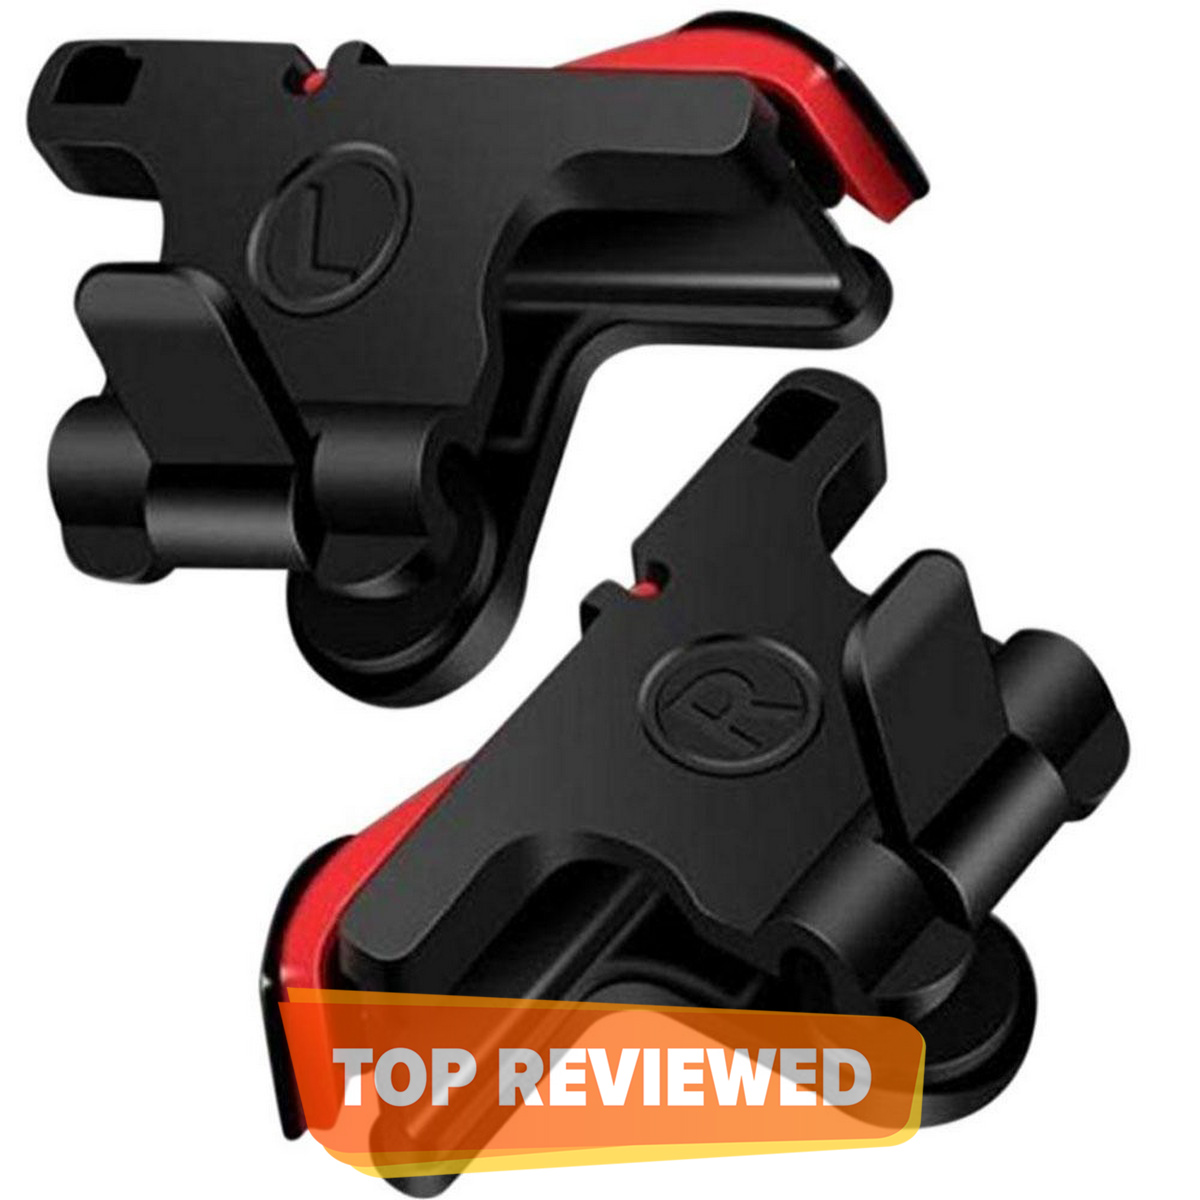 PUBG Trigger D9 PUBG Trigger Controller Fire Button or Anti-Sweat Breathable fController Fire Button and Anti-Sweat Breathable Glove L1R1 Pubg/Call of Duty/Garena Free Fire/Fortnite/Rules of Survival Version 5.0 With Latest Sensor Technology 1 Pair (2Pcs)